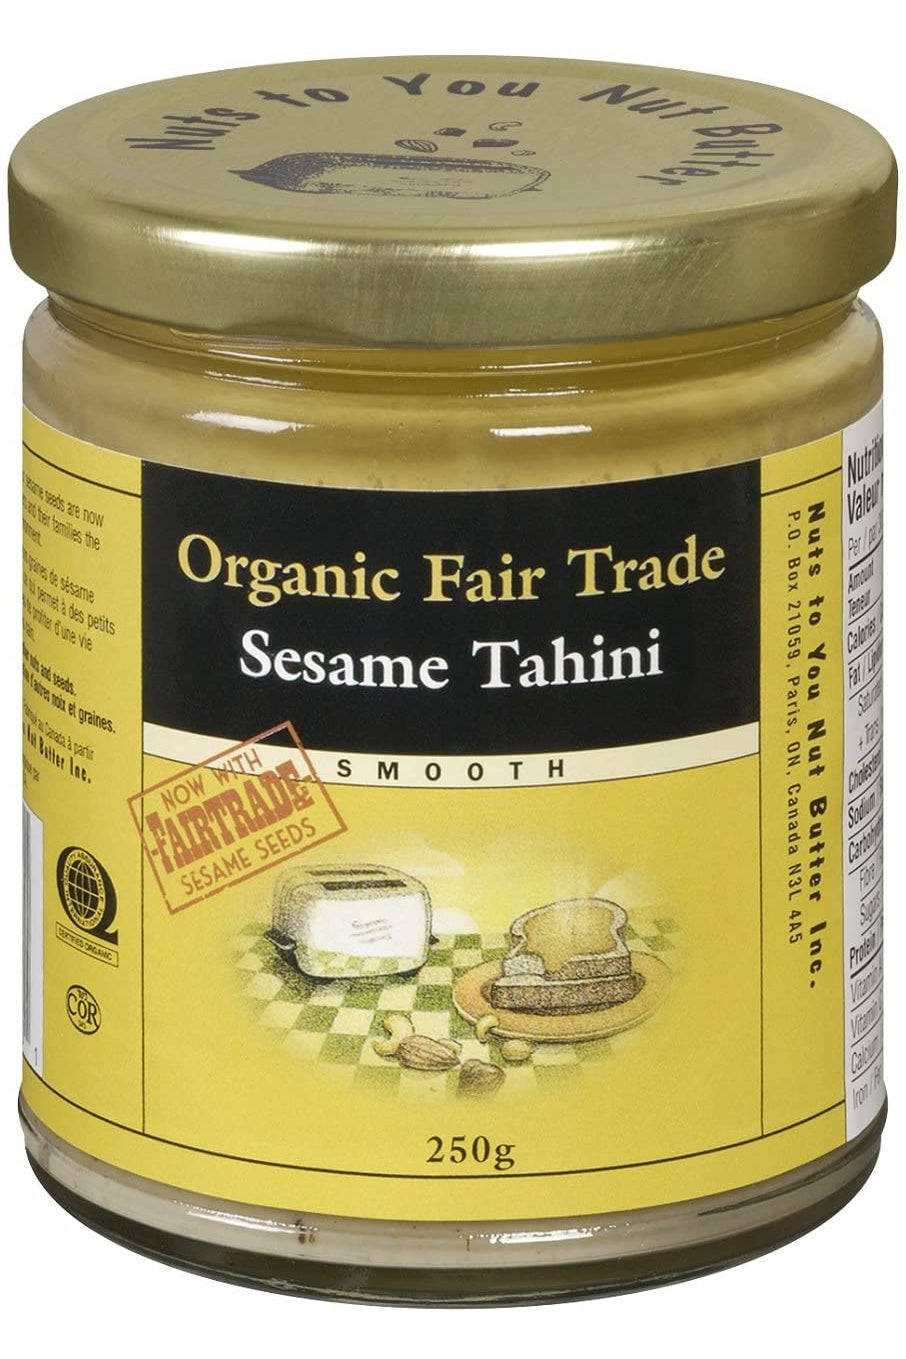 Nuts to You Organic Fair Trade Sesame Tahini - Smooth 250g